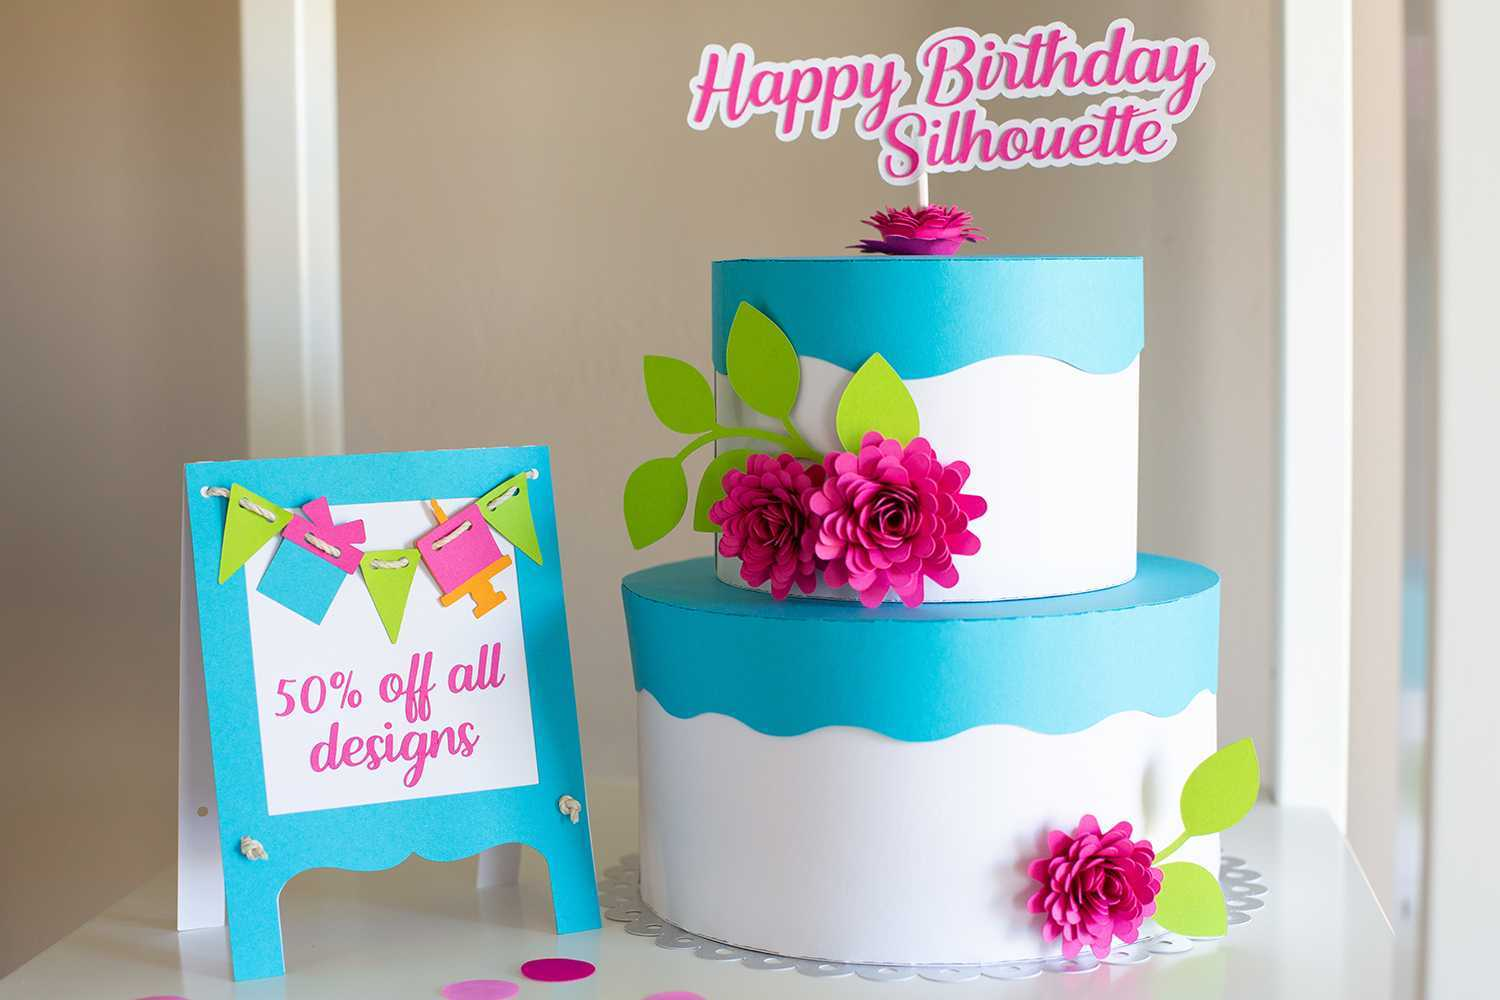 Featured Image for Celebrating Silhouette's 9th Birthday (#118307)